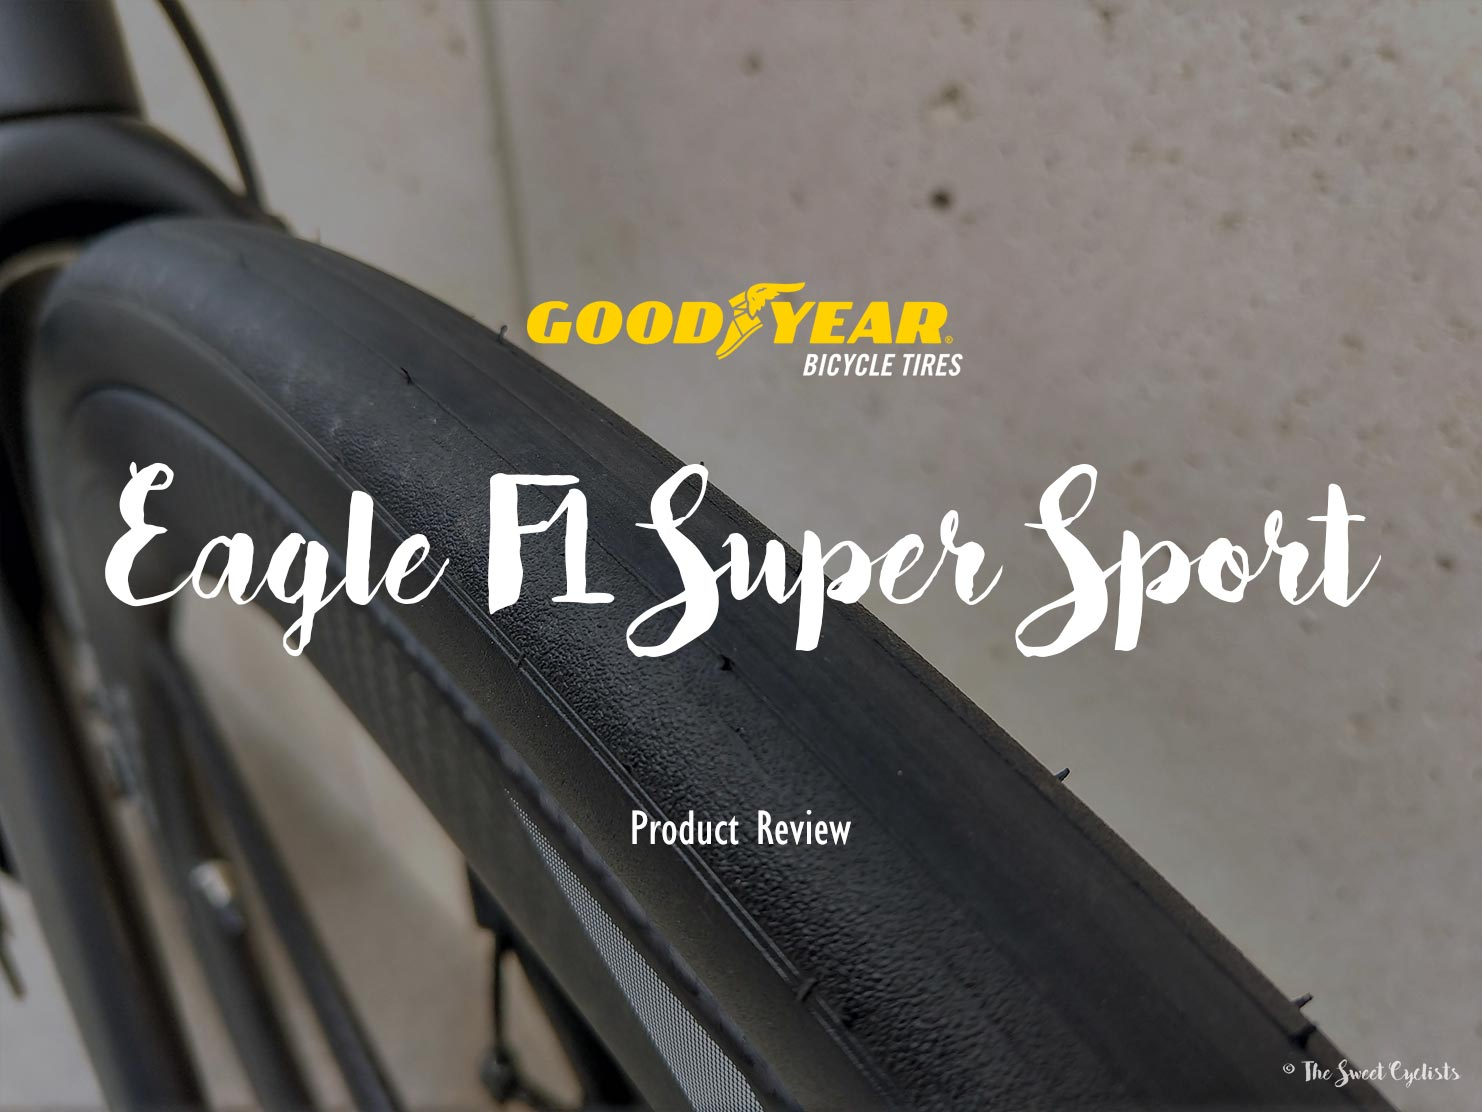 Goodyear's competition ready tires